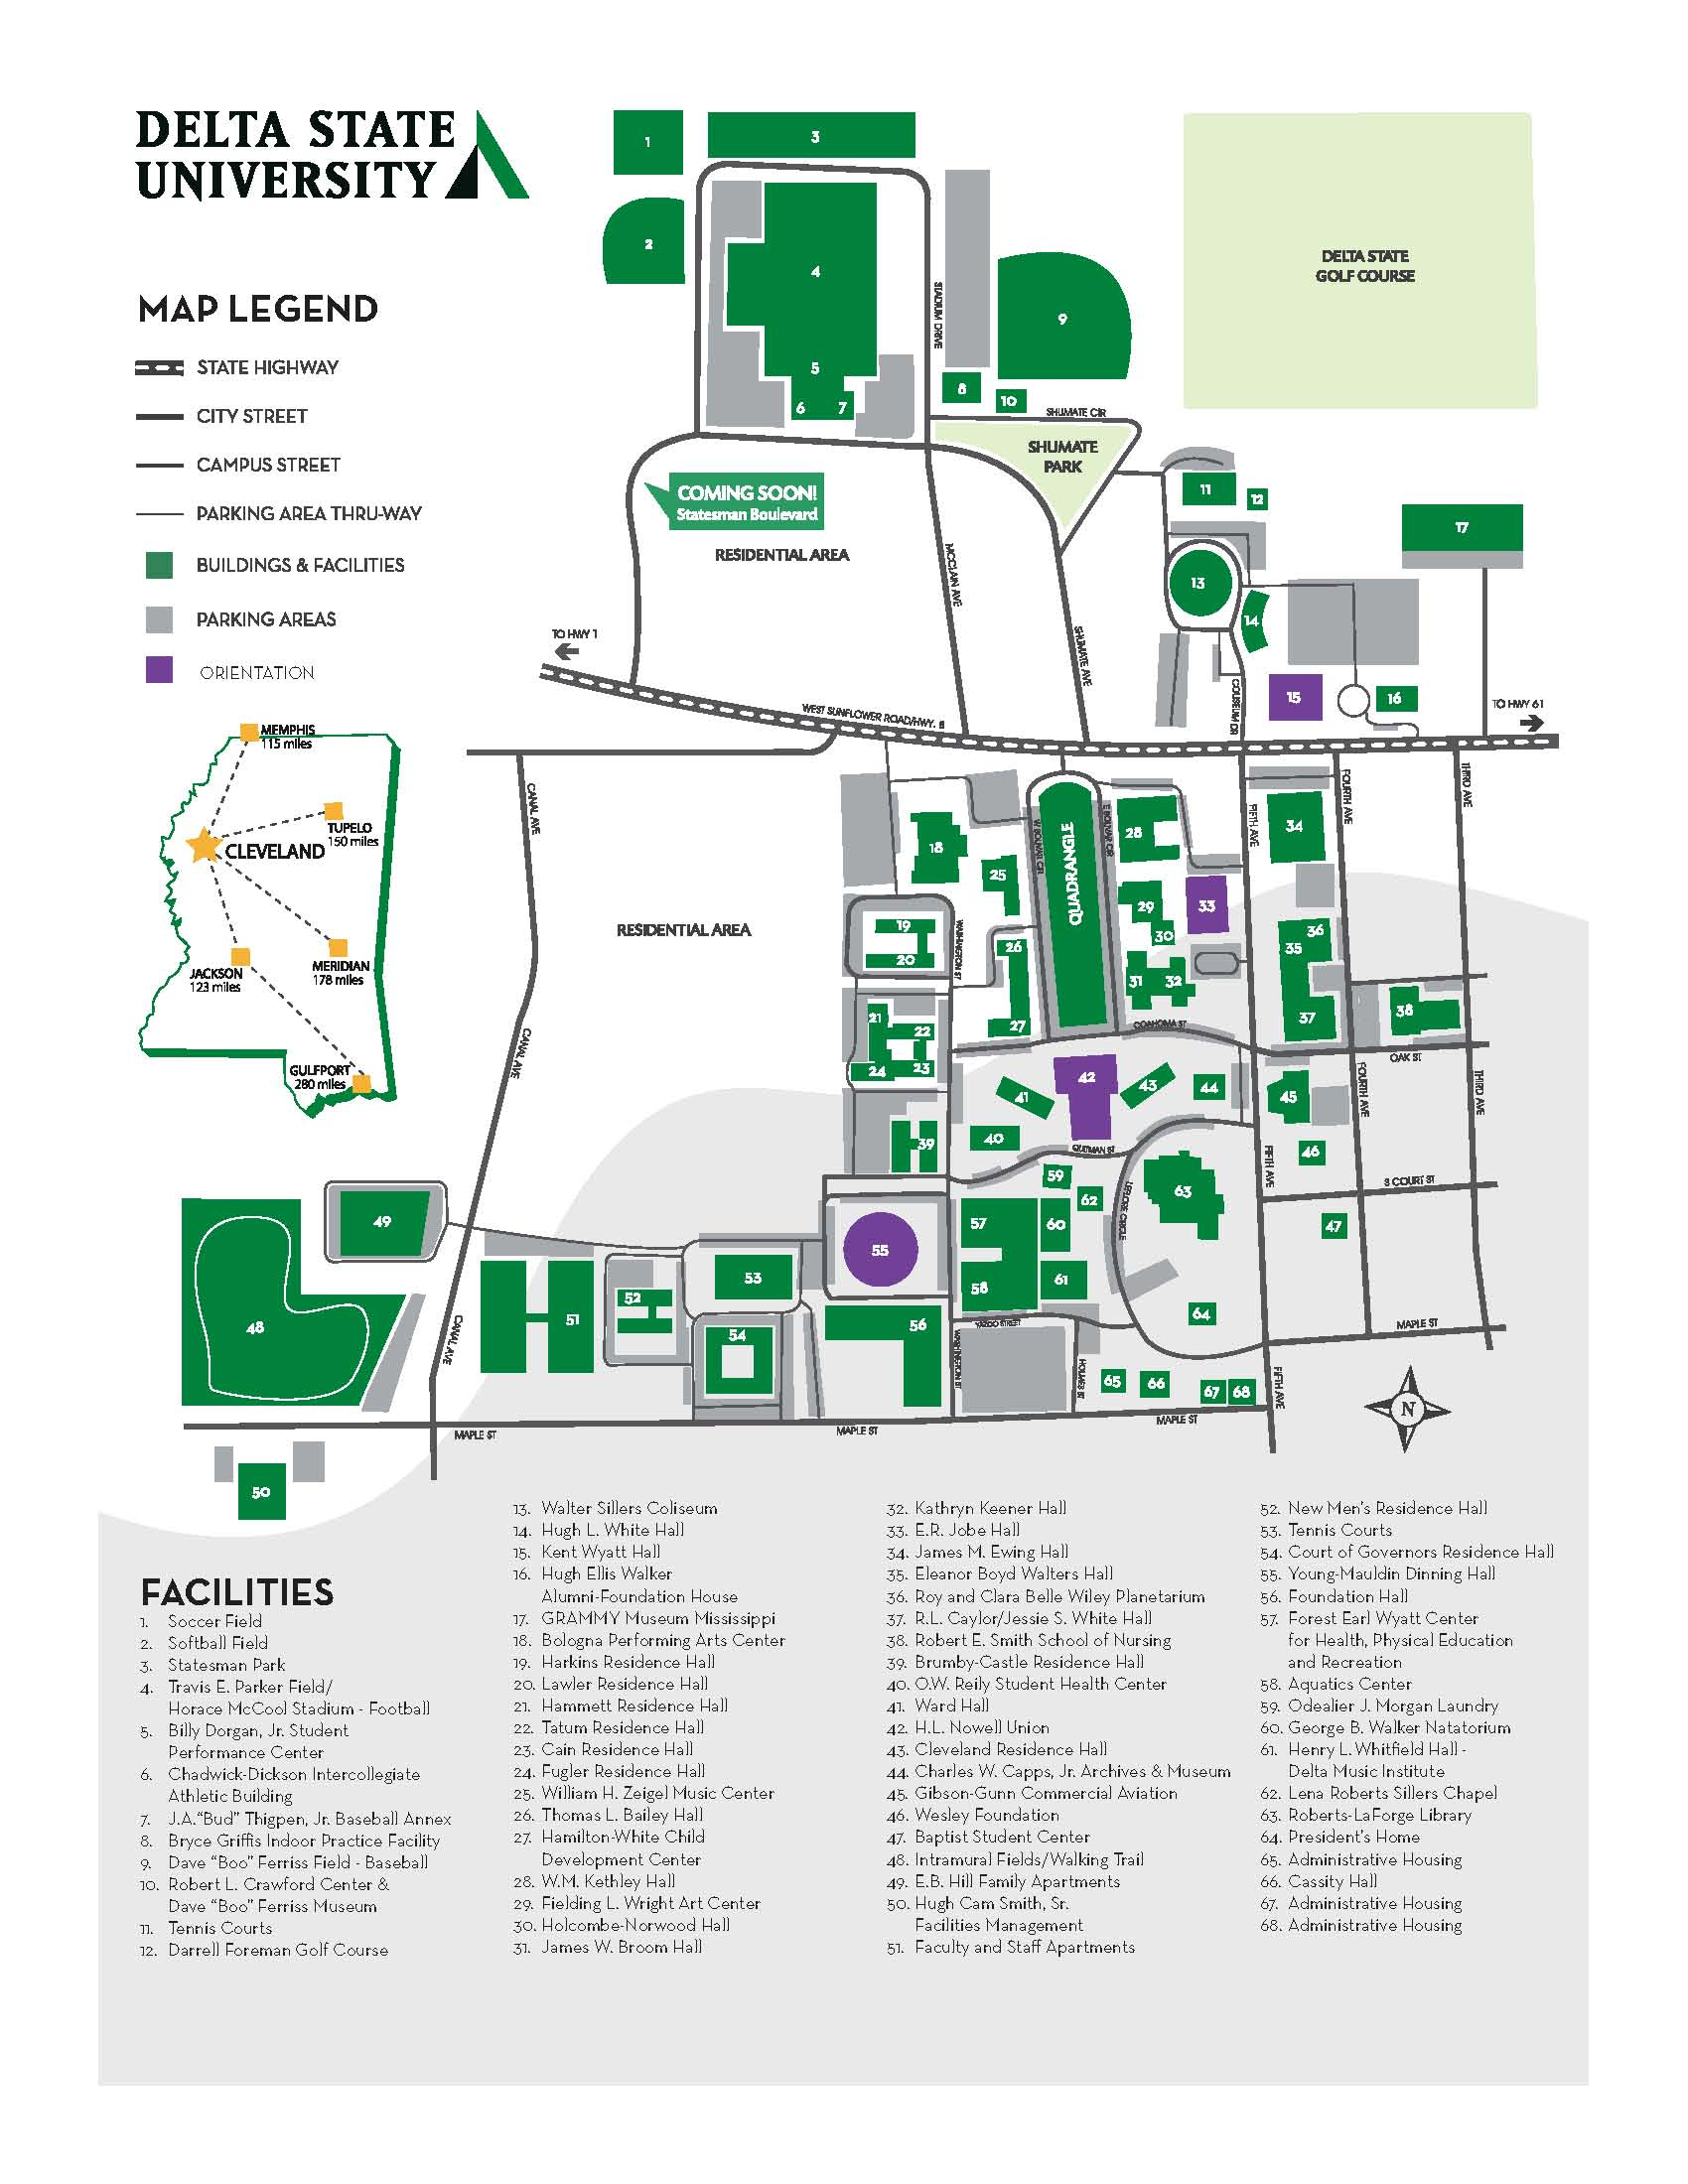 Orientation Campus Map - Student Affairs on